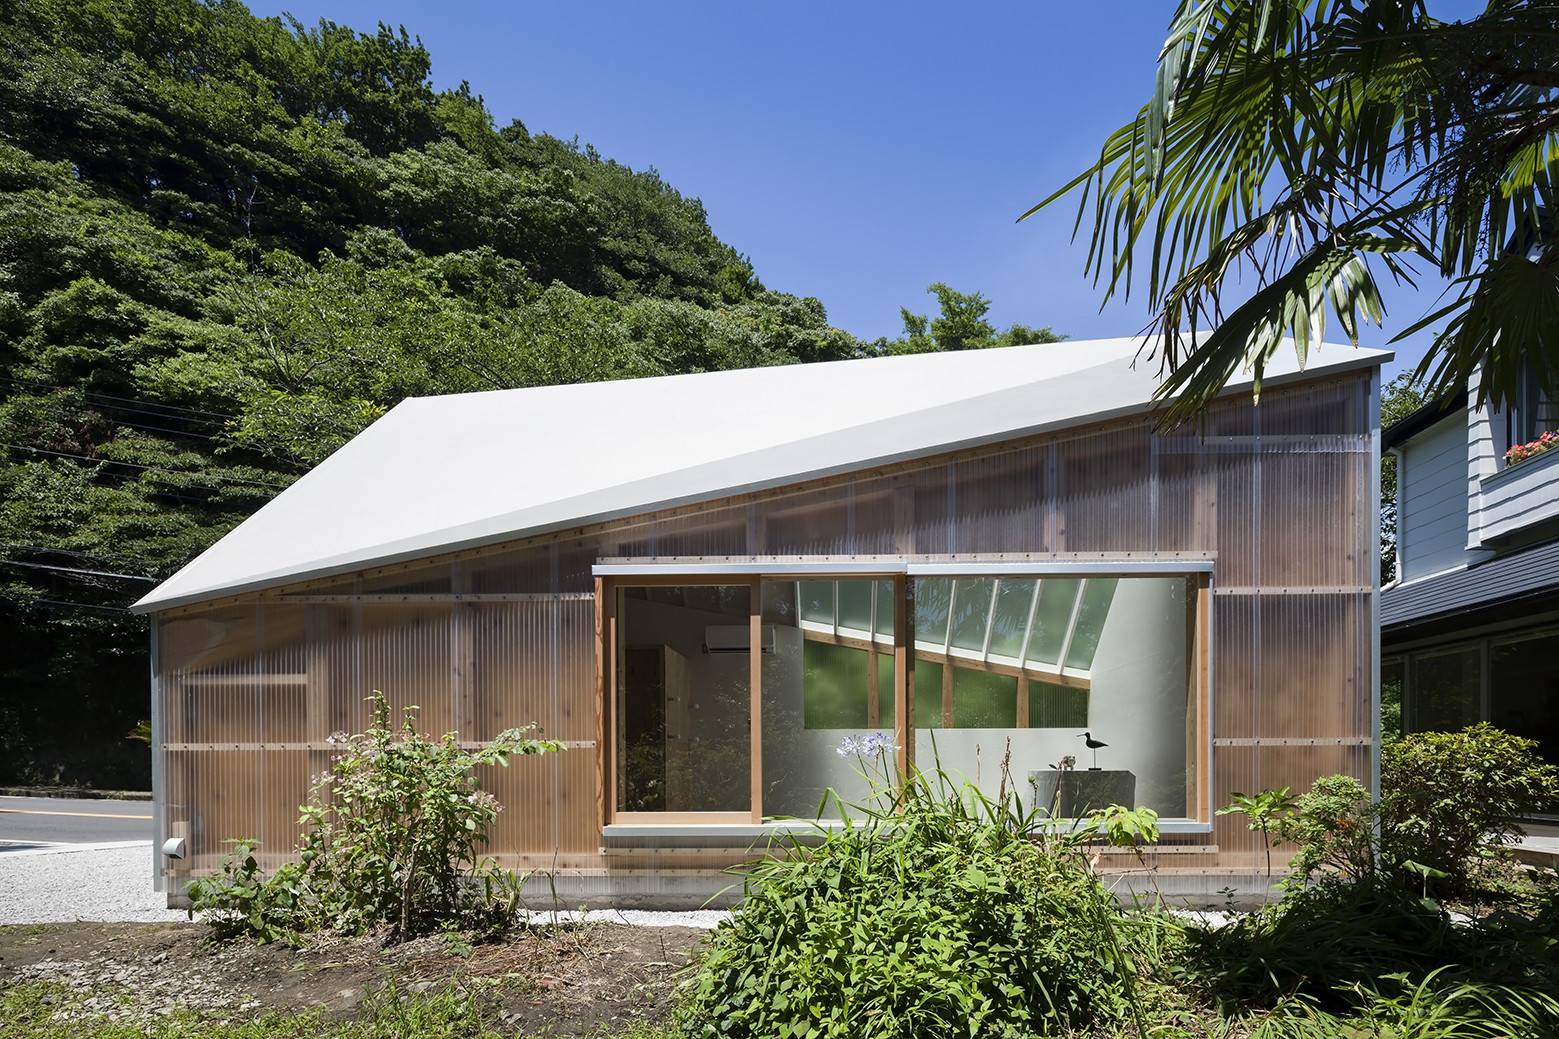 Photography Studio / FT Architects, © Shigeo Ogawa